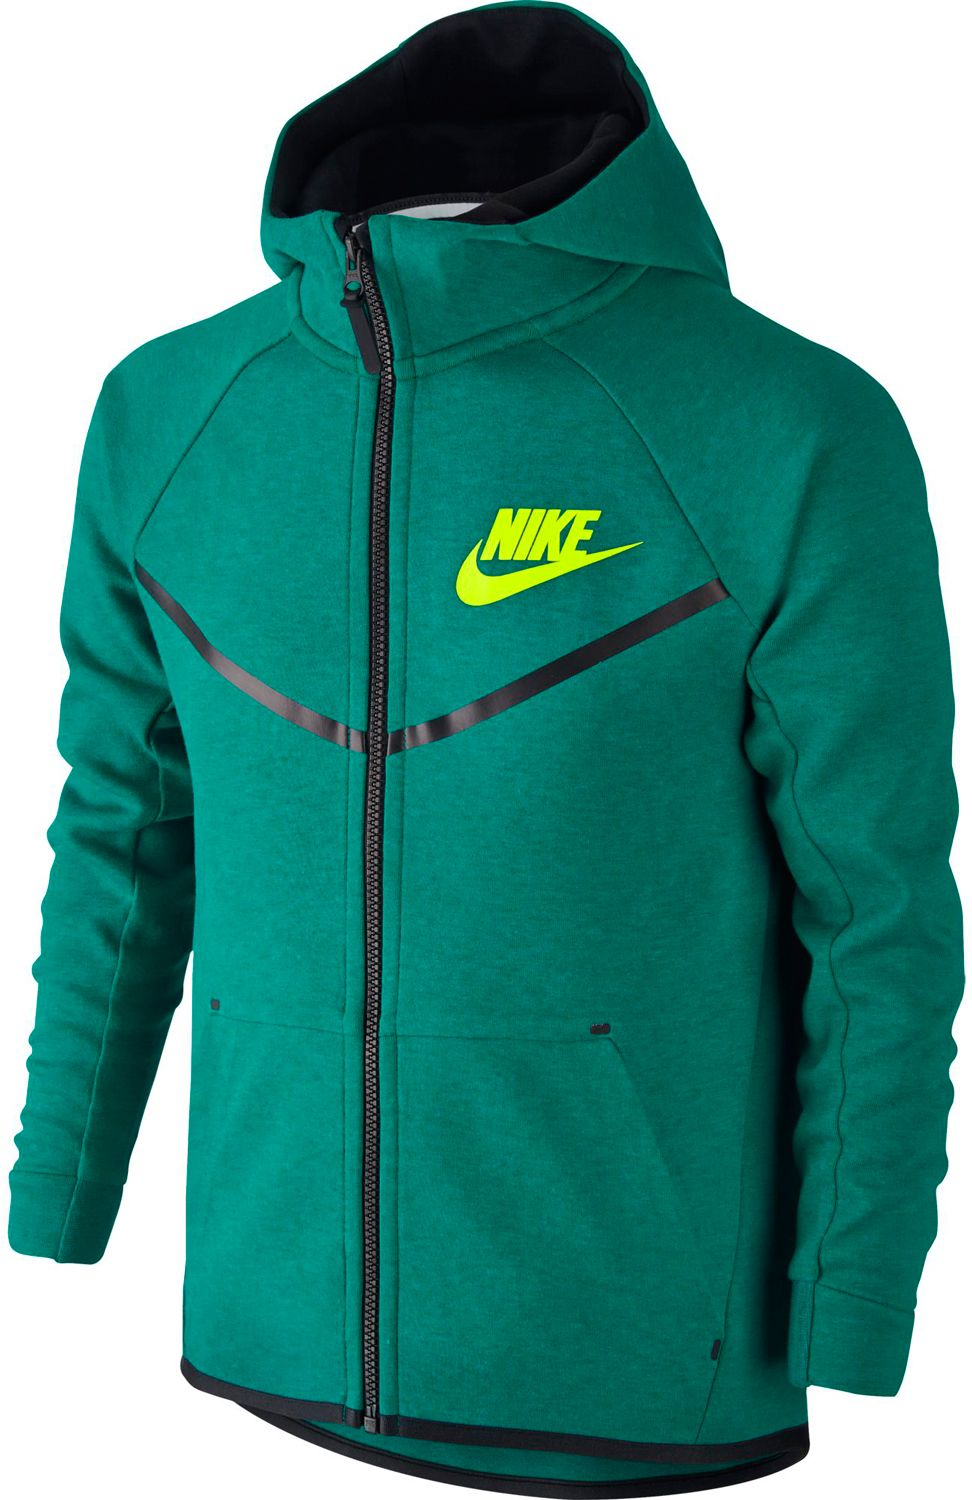 Nike Sweatshirt For Boys